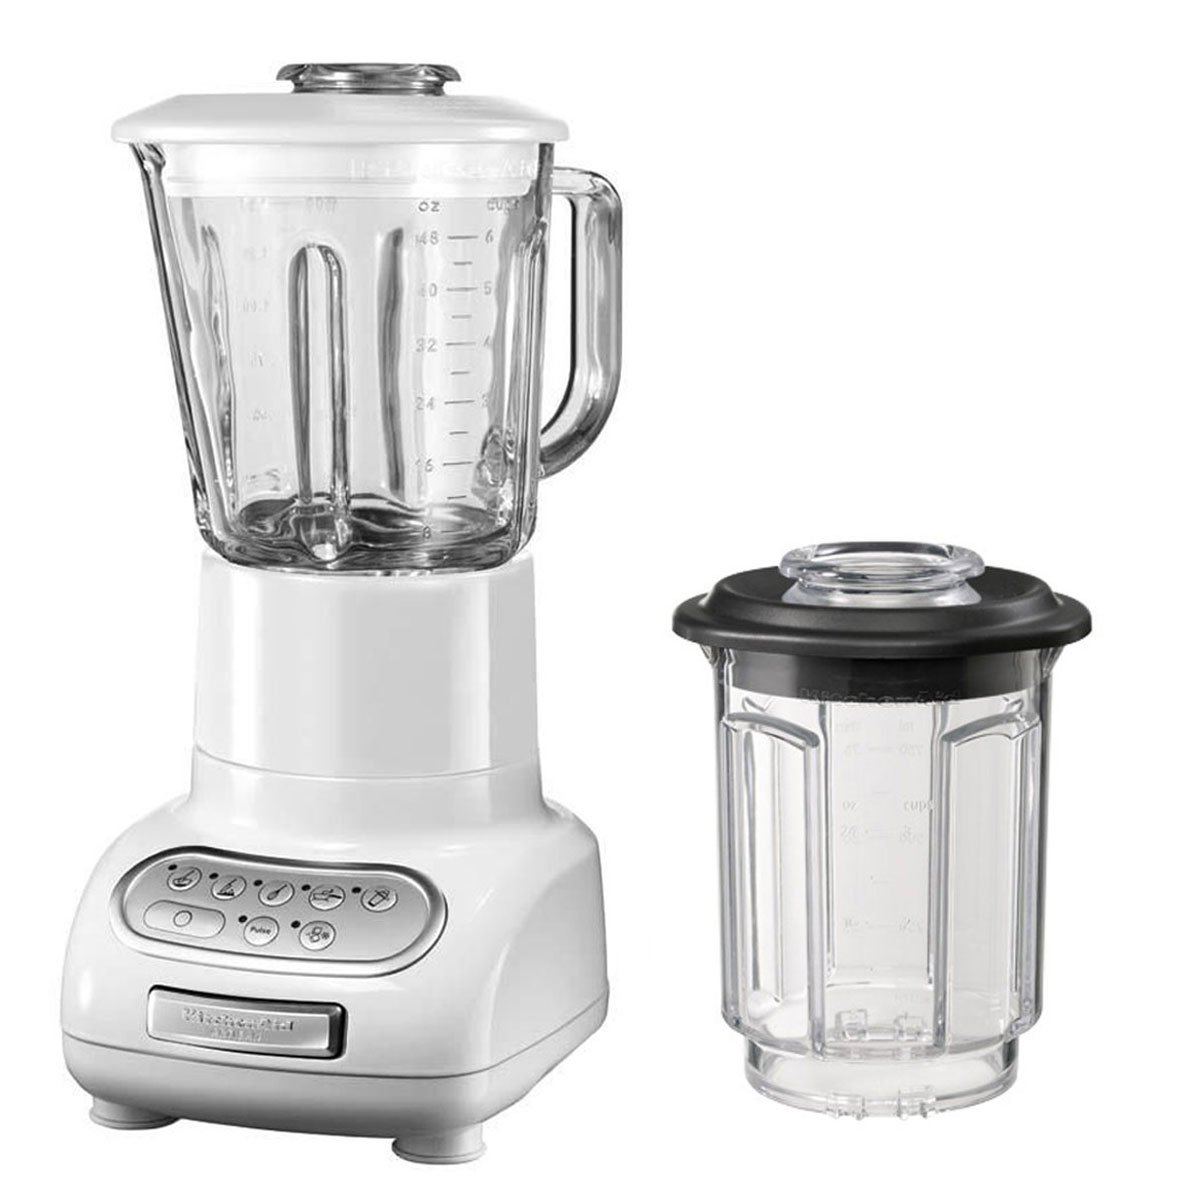 Amazon.de: Kitchenaid 5KSB5553EWH Standmixer Serie CLASSIC